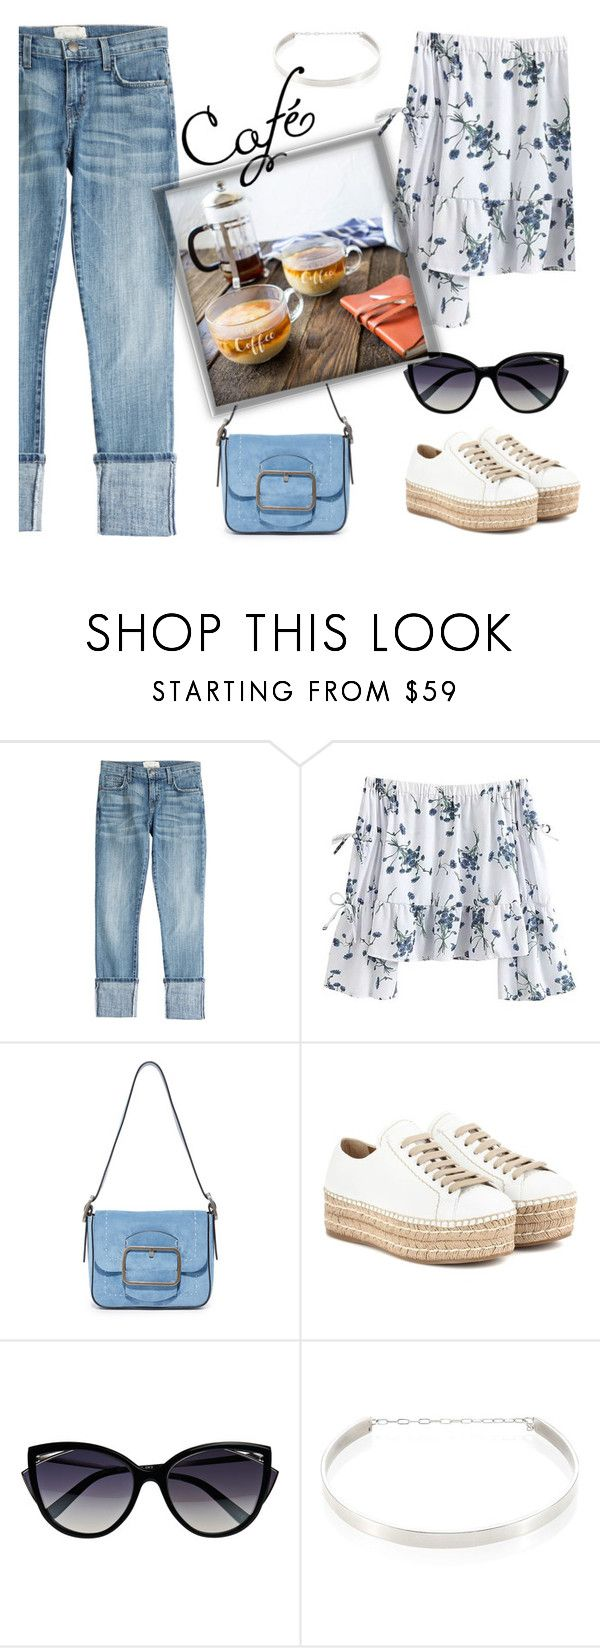 """Untitled #846"" by m-jelic ❤ liked on Polyvore featuring Current/Elliott, Tory Burch, Prada, La Perla, Jennifer Zeuner, Cathy's Concepts and WALL"